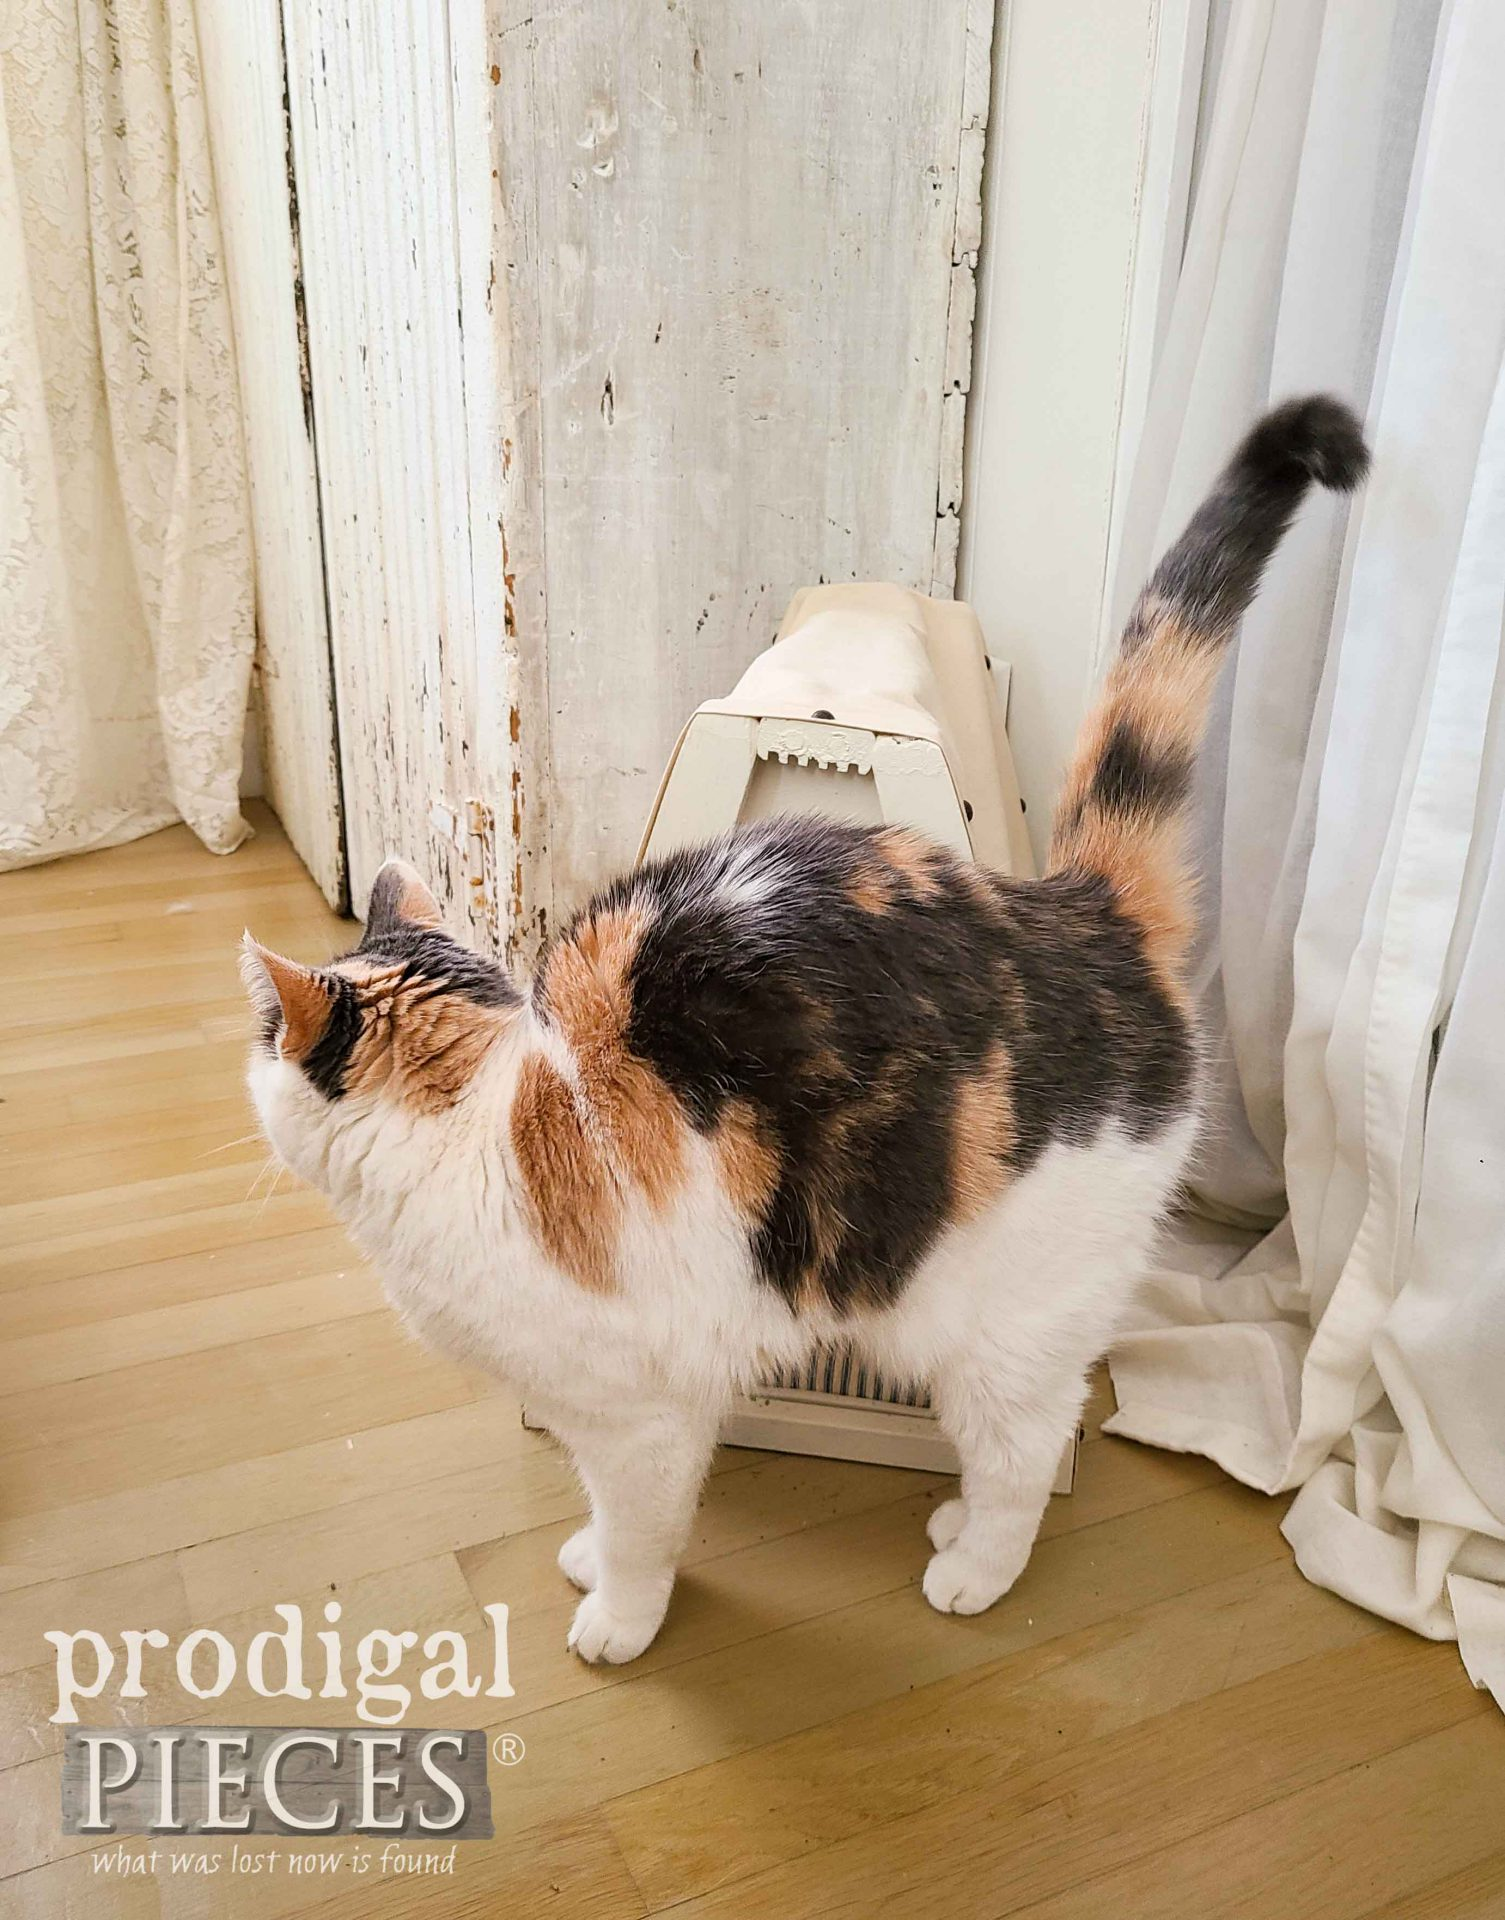 Silly Kitty with Cat Cave by Larissa of Prodigal Pieces | prodigalpieces.com #prodigalpieces #pets